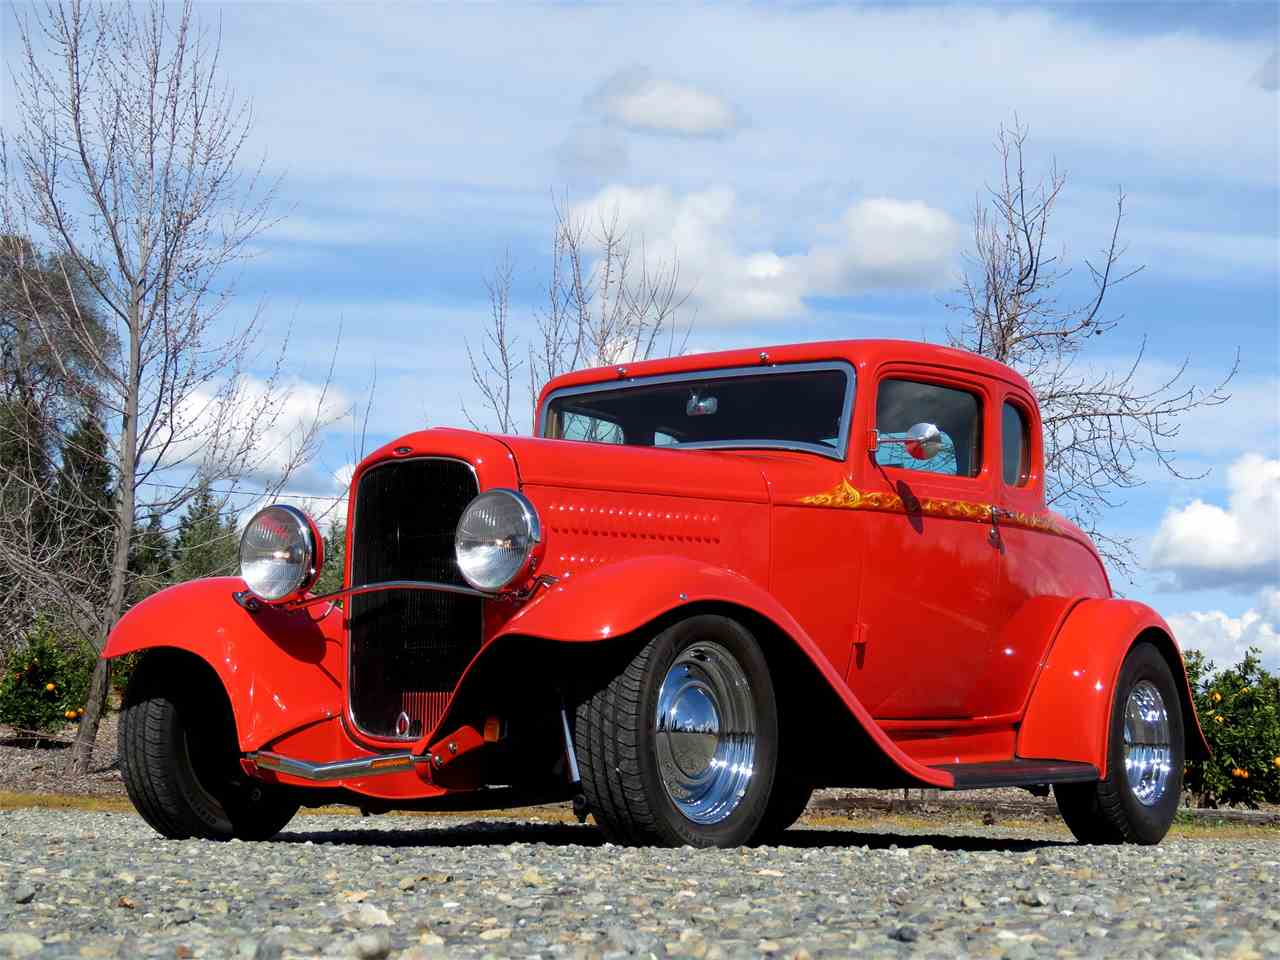 Stunning 30 Ford Coupe For Sale Photos - Classic Cars Ideas - boiq.info